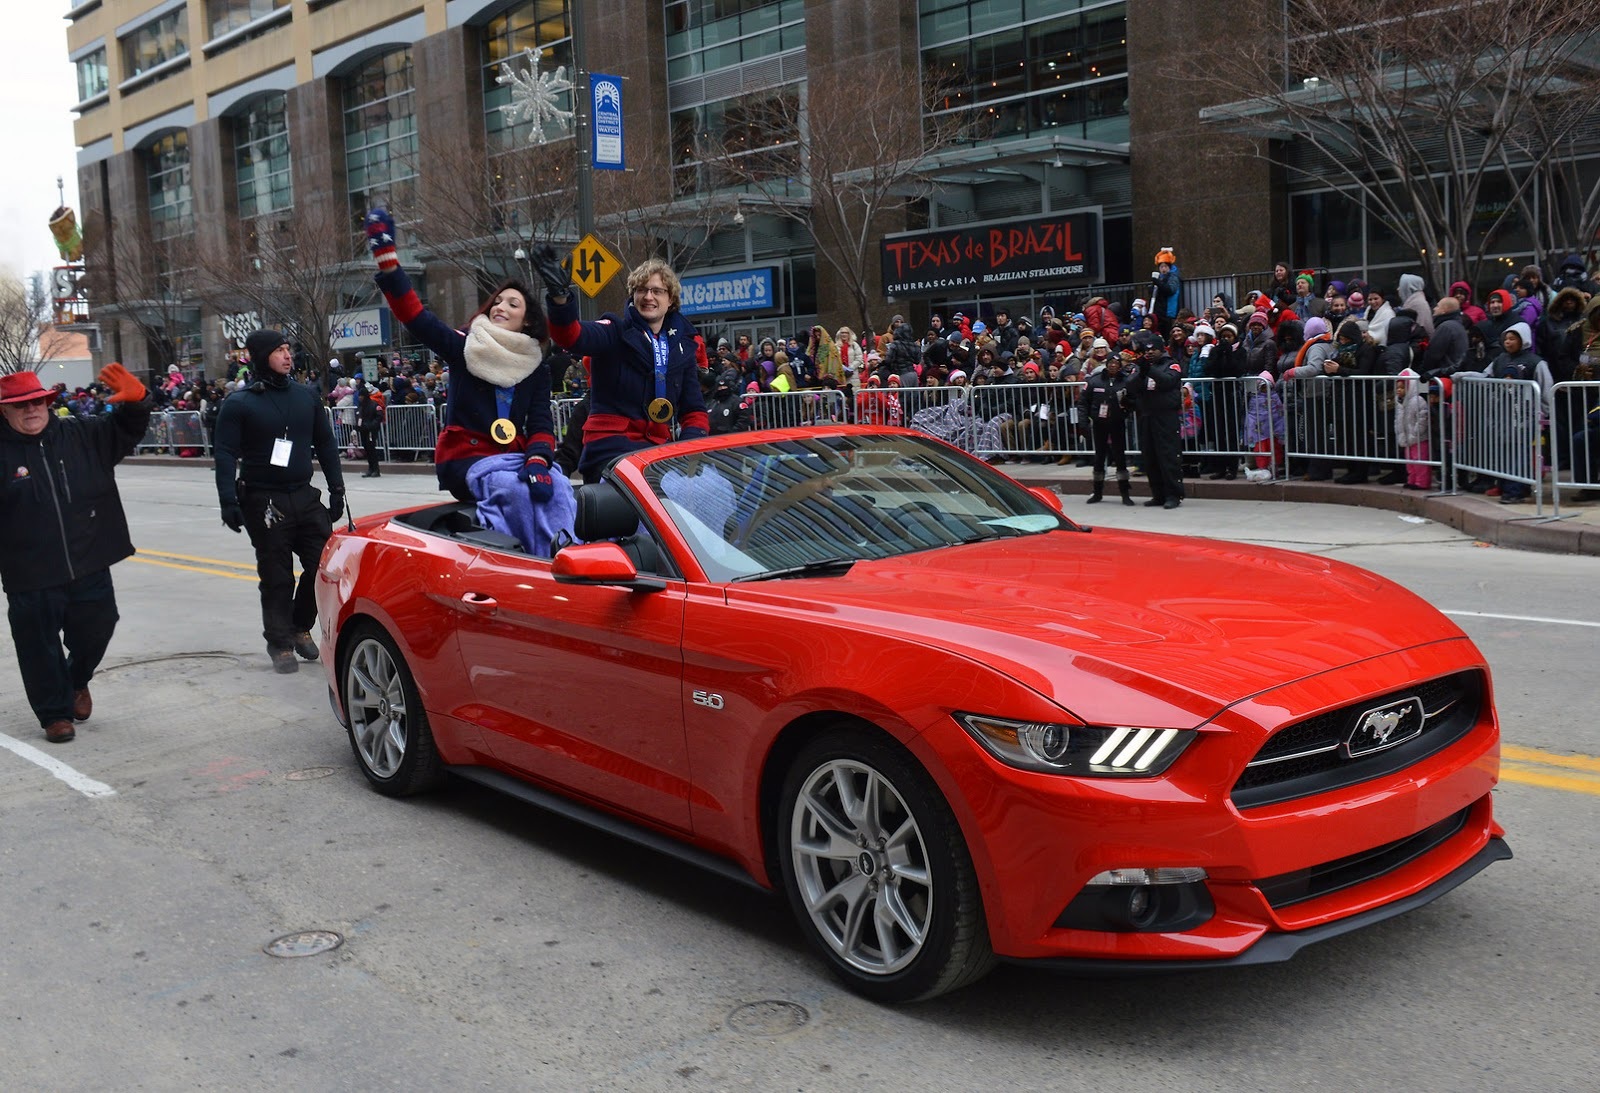 Fire Risk Prompts Ford to Recall 2015 Mustang